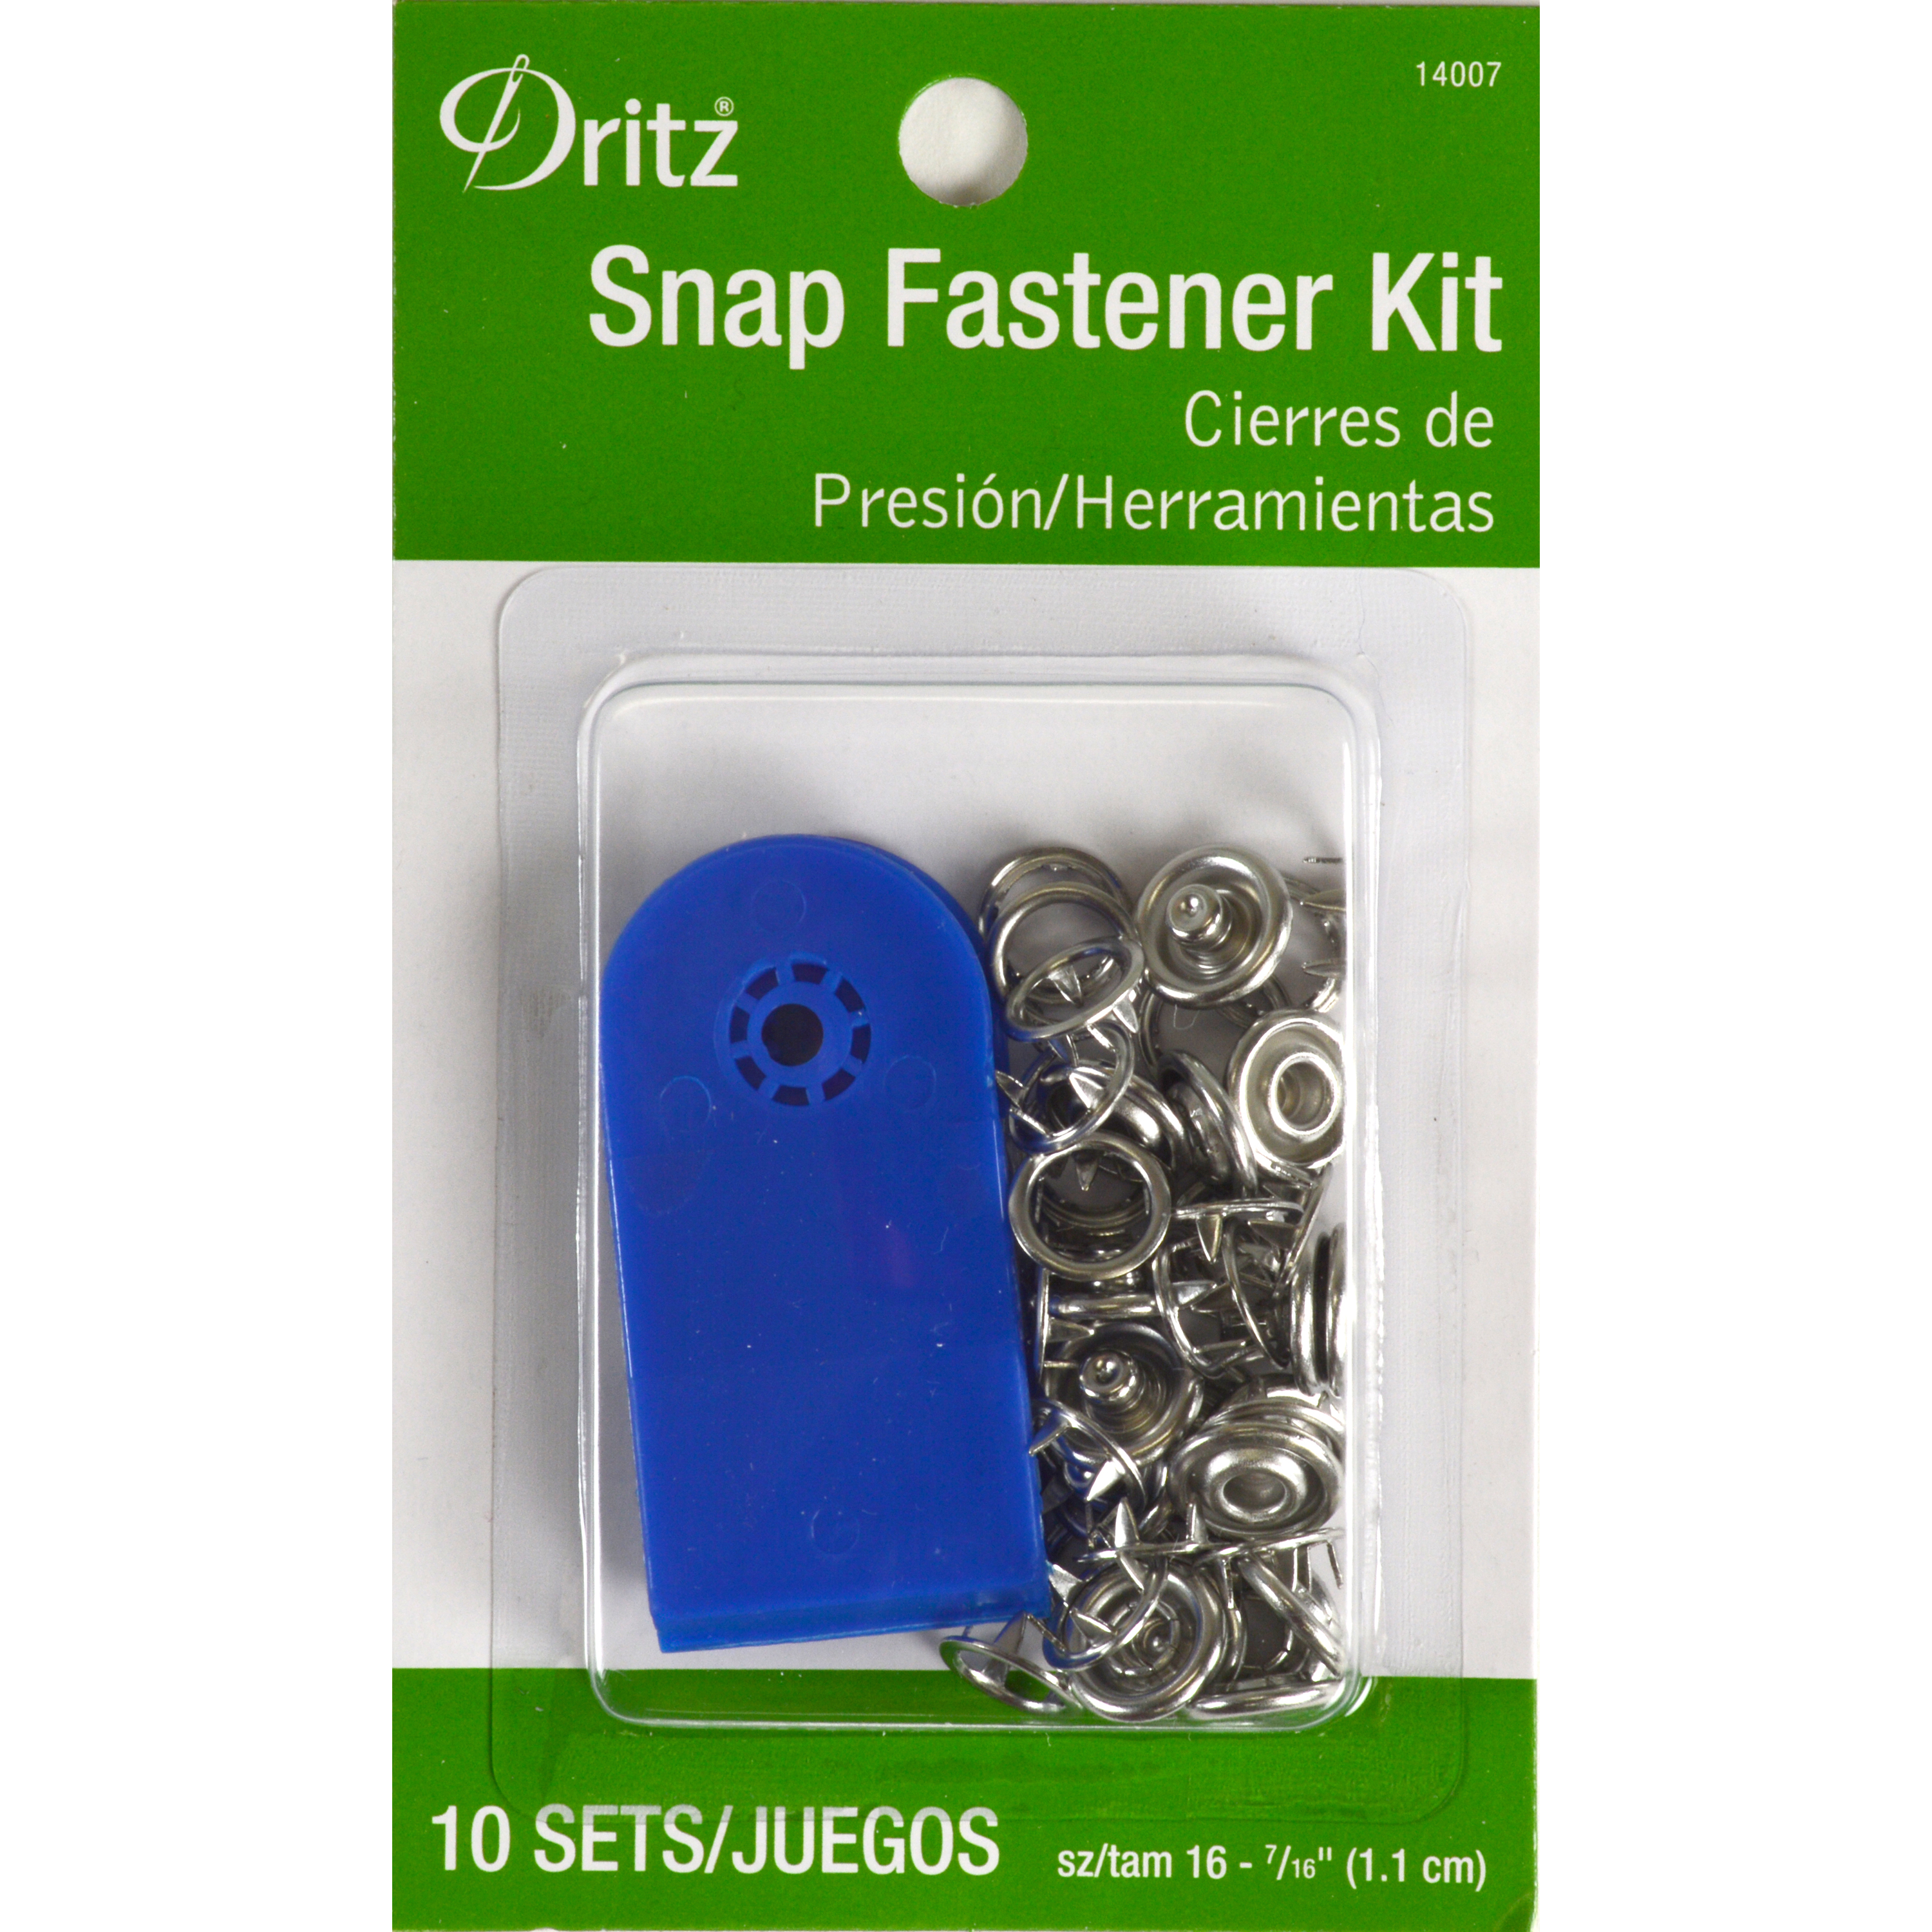 Dritz Snap Fastener Kit